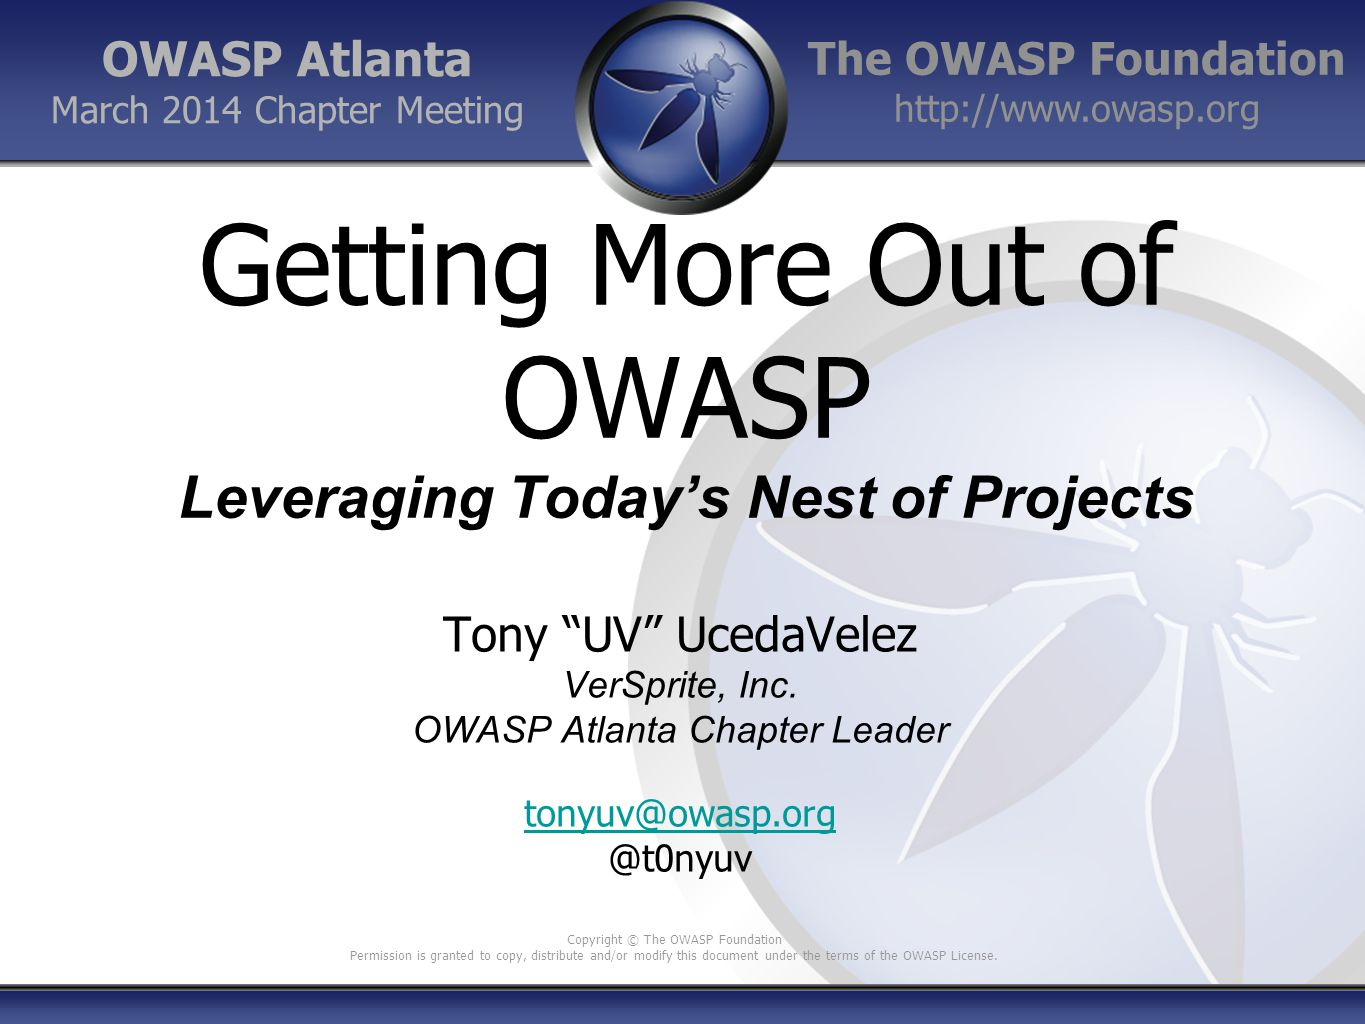 42 Prescribed Solutions for Development & QA Process OWASP Code Review Methodology for source code reviews Book (2 nd best selling for OWASP) OWASP Development Guide Establishes a process for secure development efforts across various SDLCs OWASP Cheat Sheet Series See following slide OWASP Countermeasures OWASP CSRFGuard OWASP Anti-Samy OWASP Enterprise API (ESAPI) Reference OWASP WebGoat Deliberate broken Apache web server with courses on common web insecurities OWASP ASDR Great reference for developers and QA professionals OWASP Video Series Free video series geared towards Developers and Security Testers (QA) OWASP Podcast Series Multiple topics covered – not just for dev.